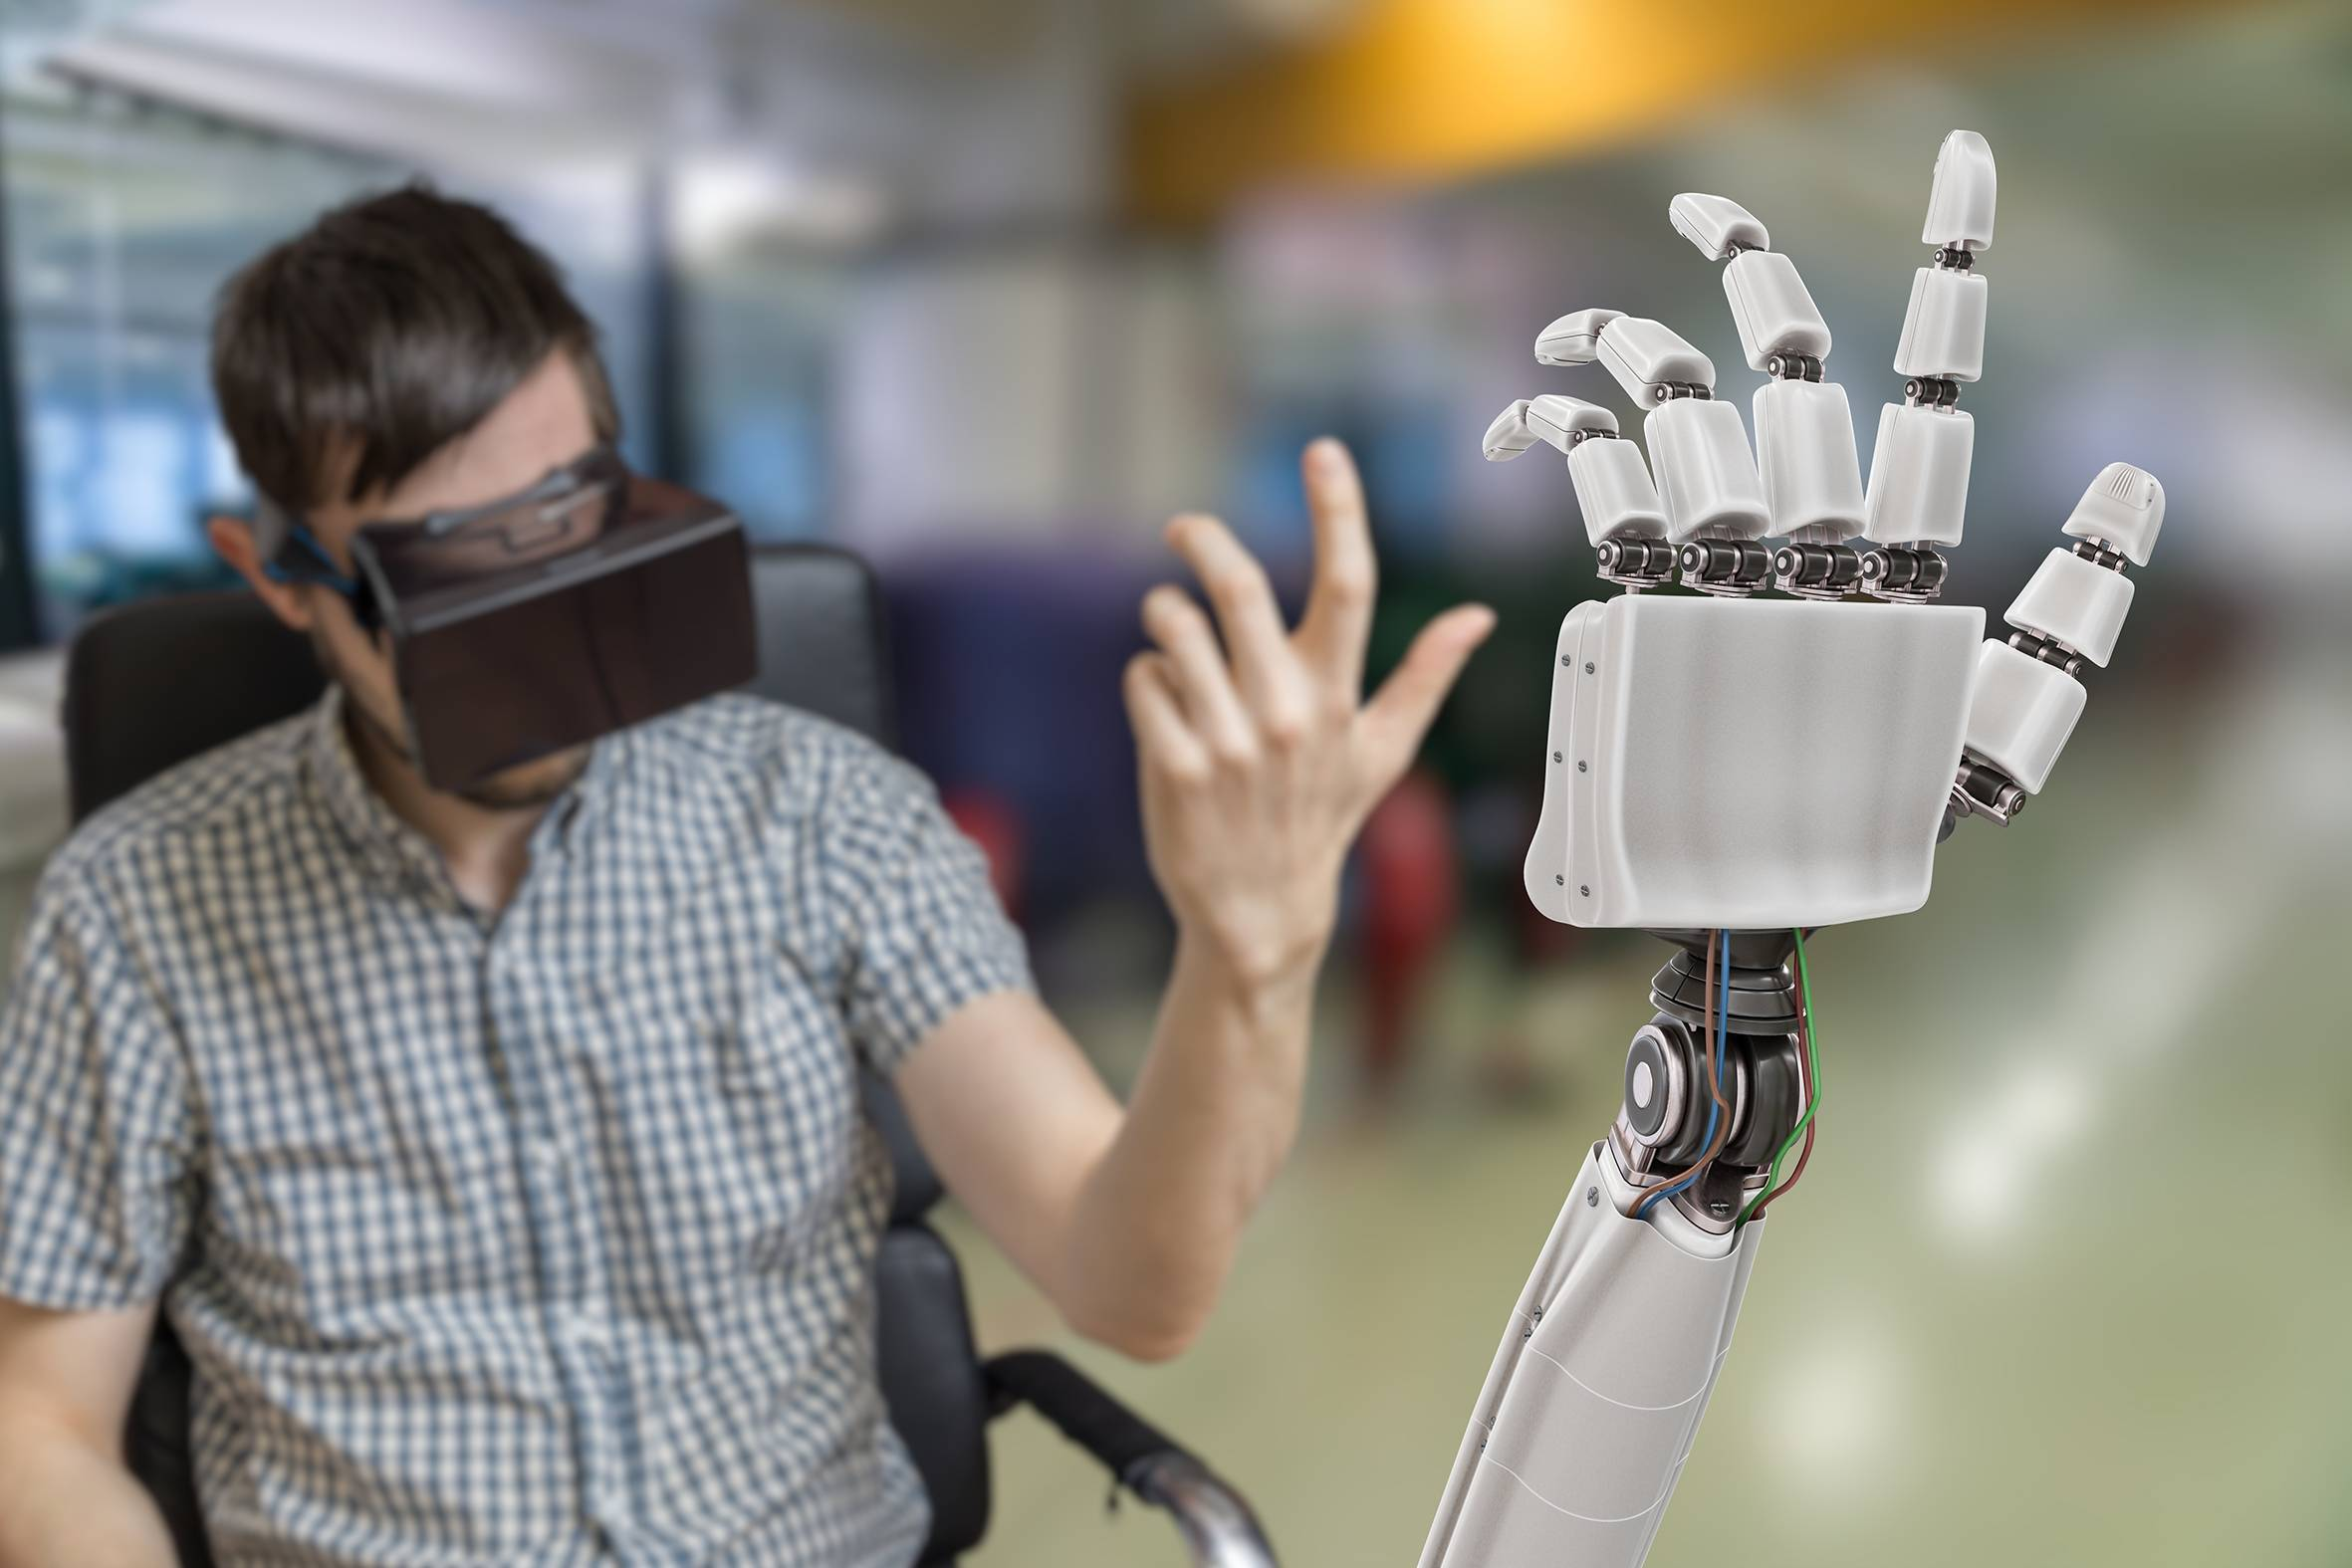 Report calls for better understanding of the future risks of tech to workplace wellbeing